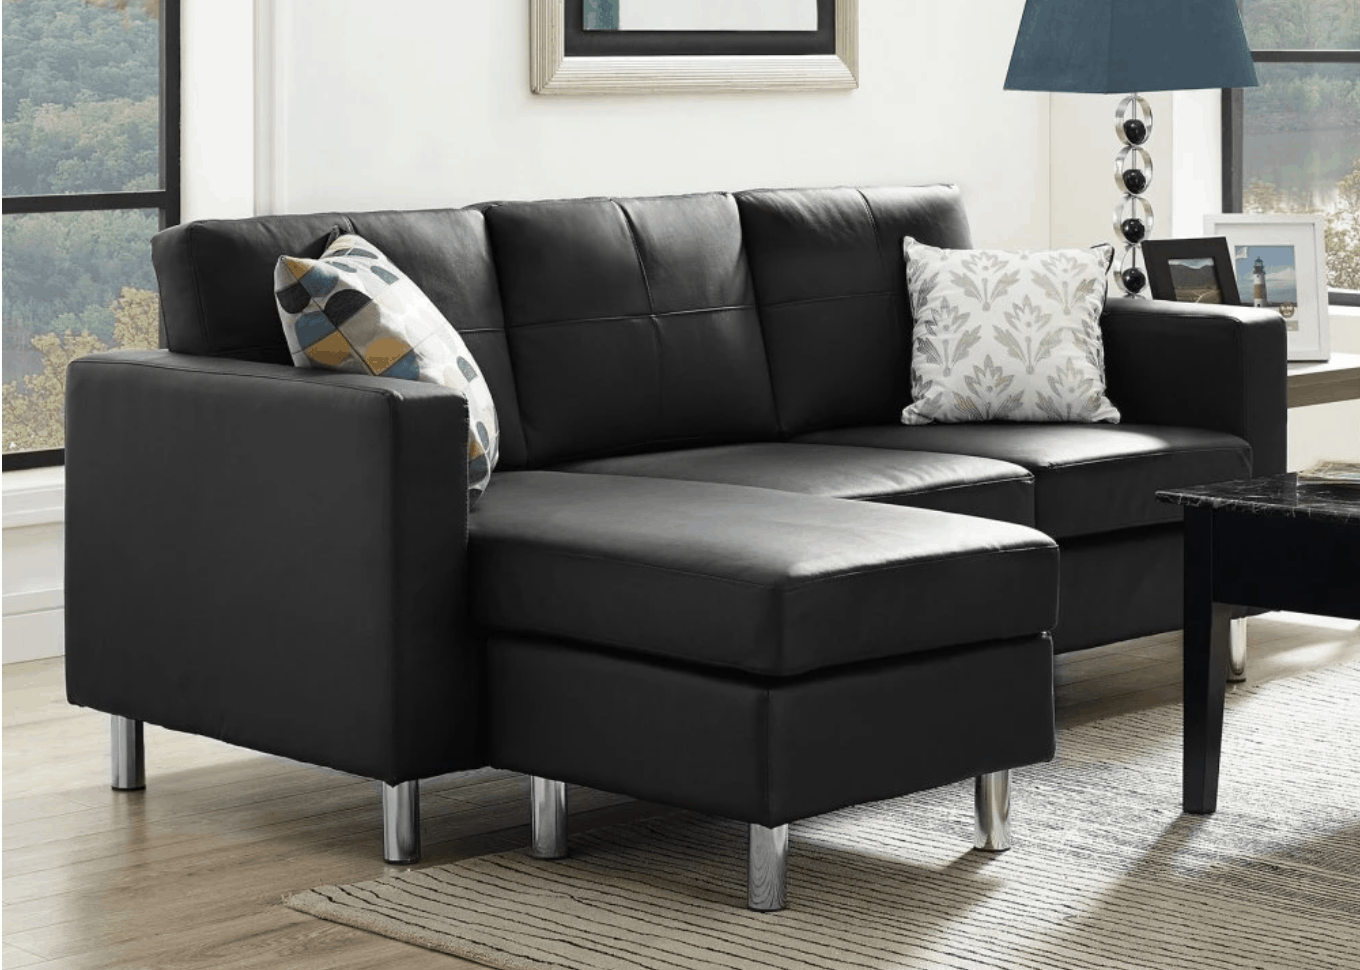 75 modern sectional sofas for small spaces 2018 Small modern sofa